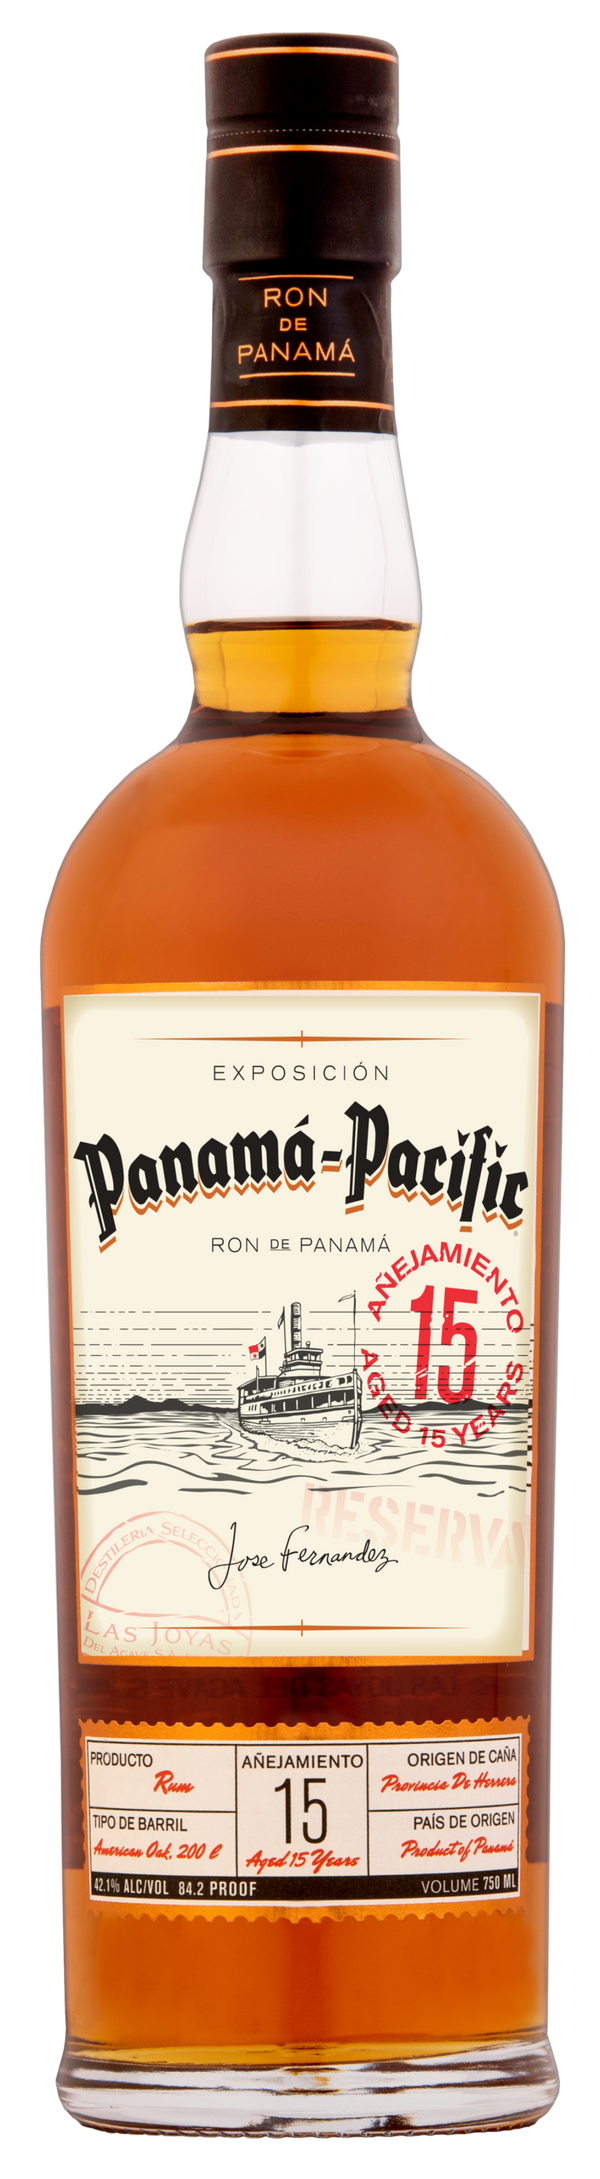 Panama-Pacific 15Yr Rum 750ml